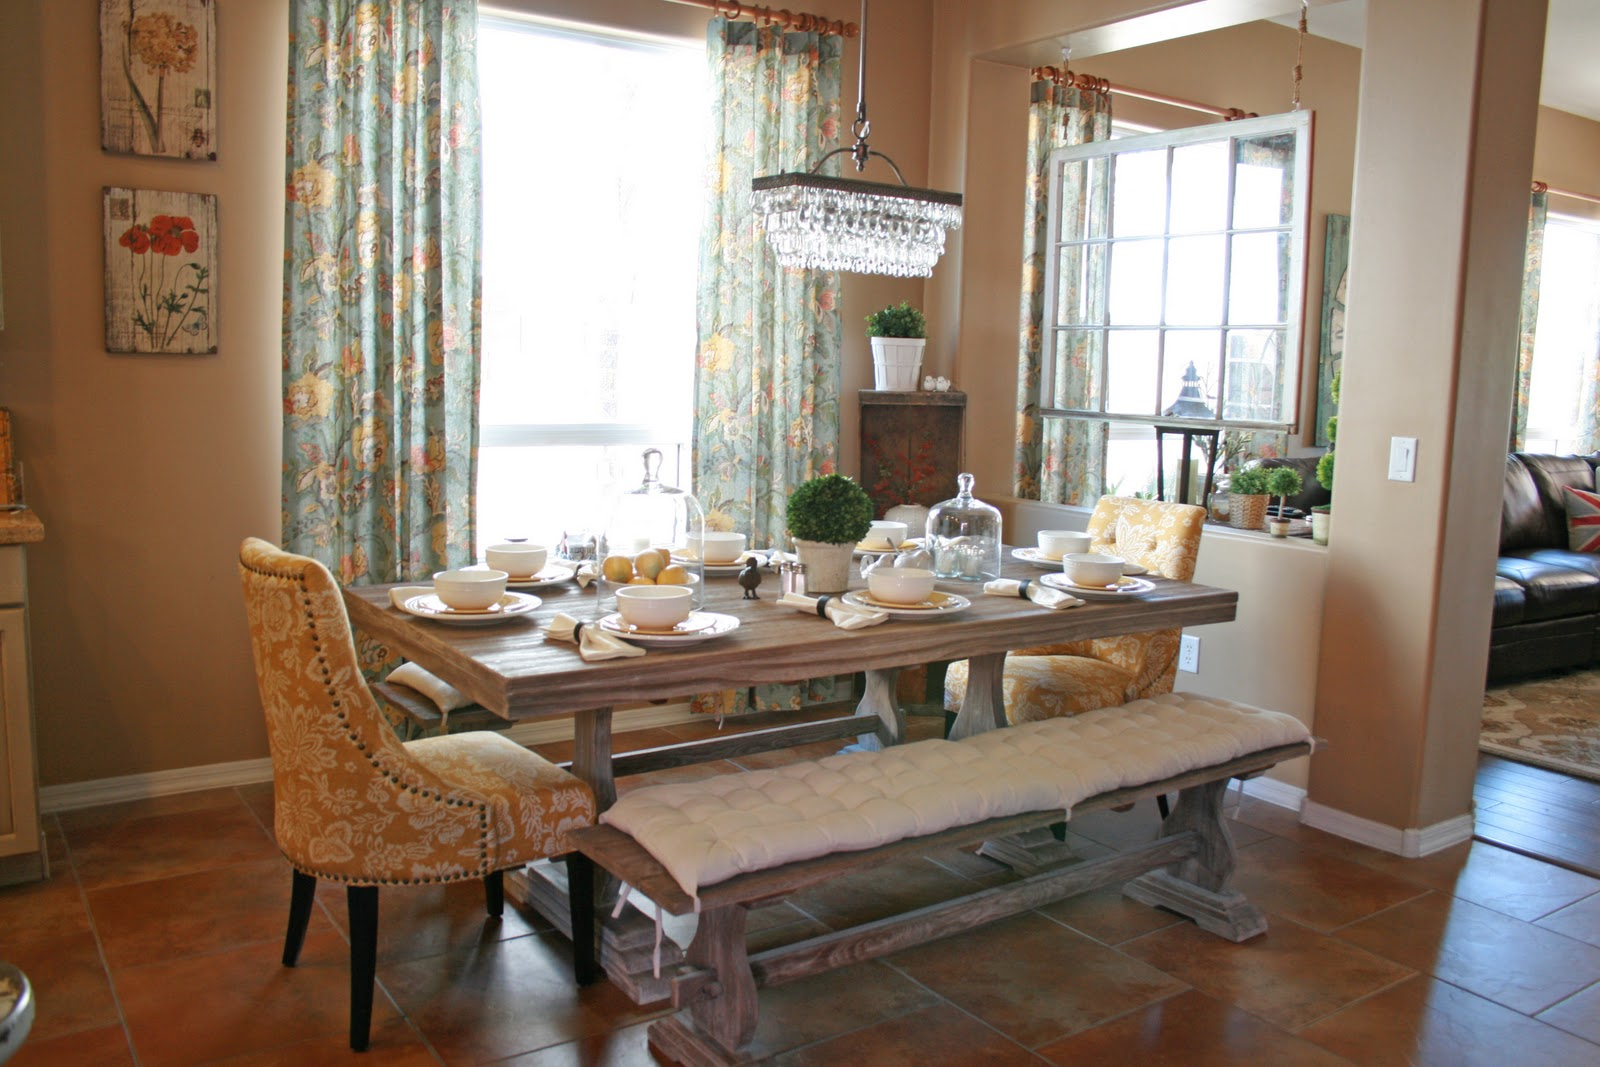 kitchen tables with bench deep fryer grand design donnas living and dining room